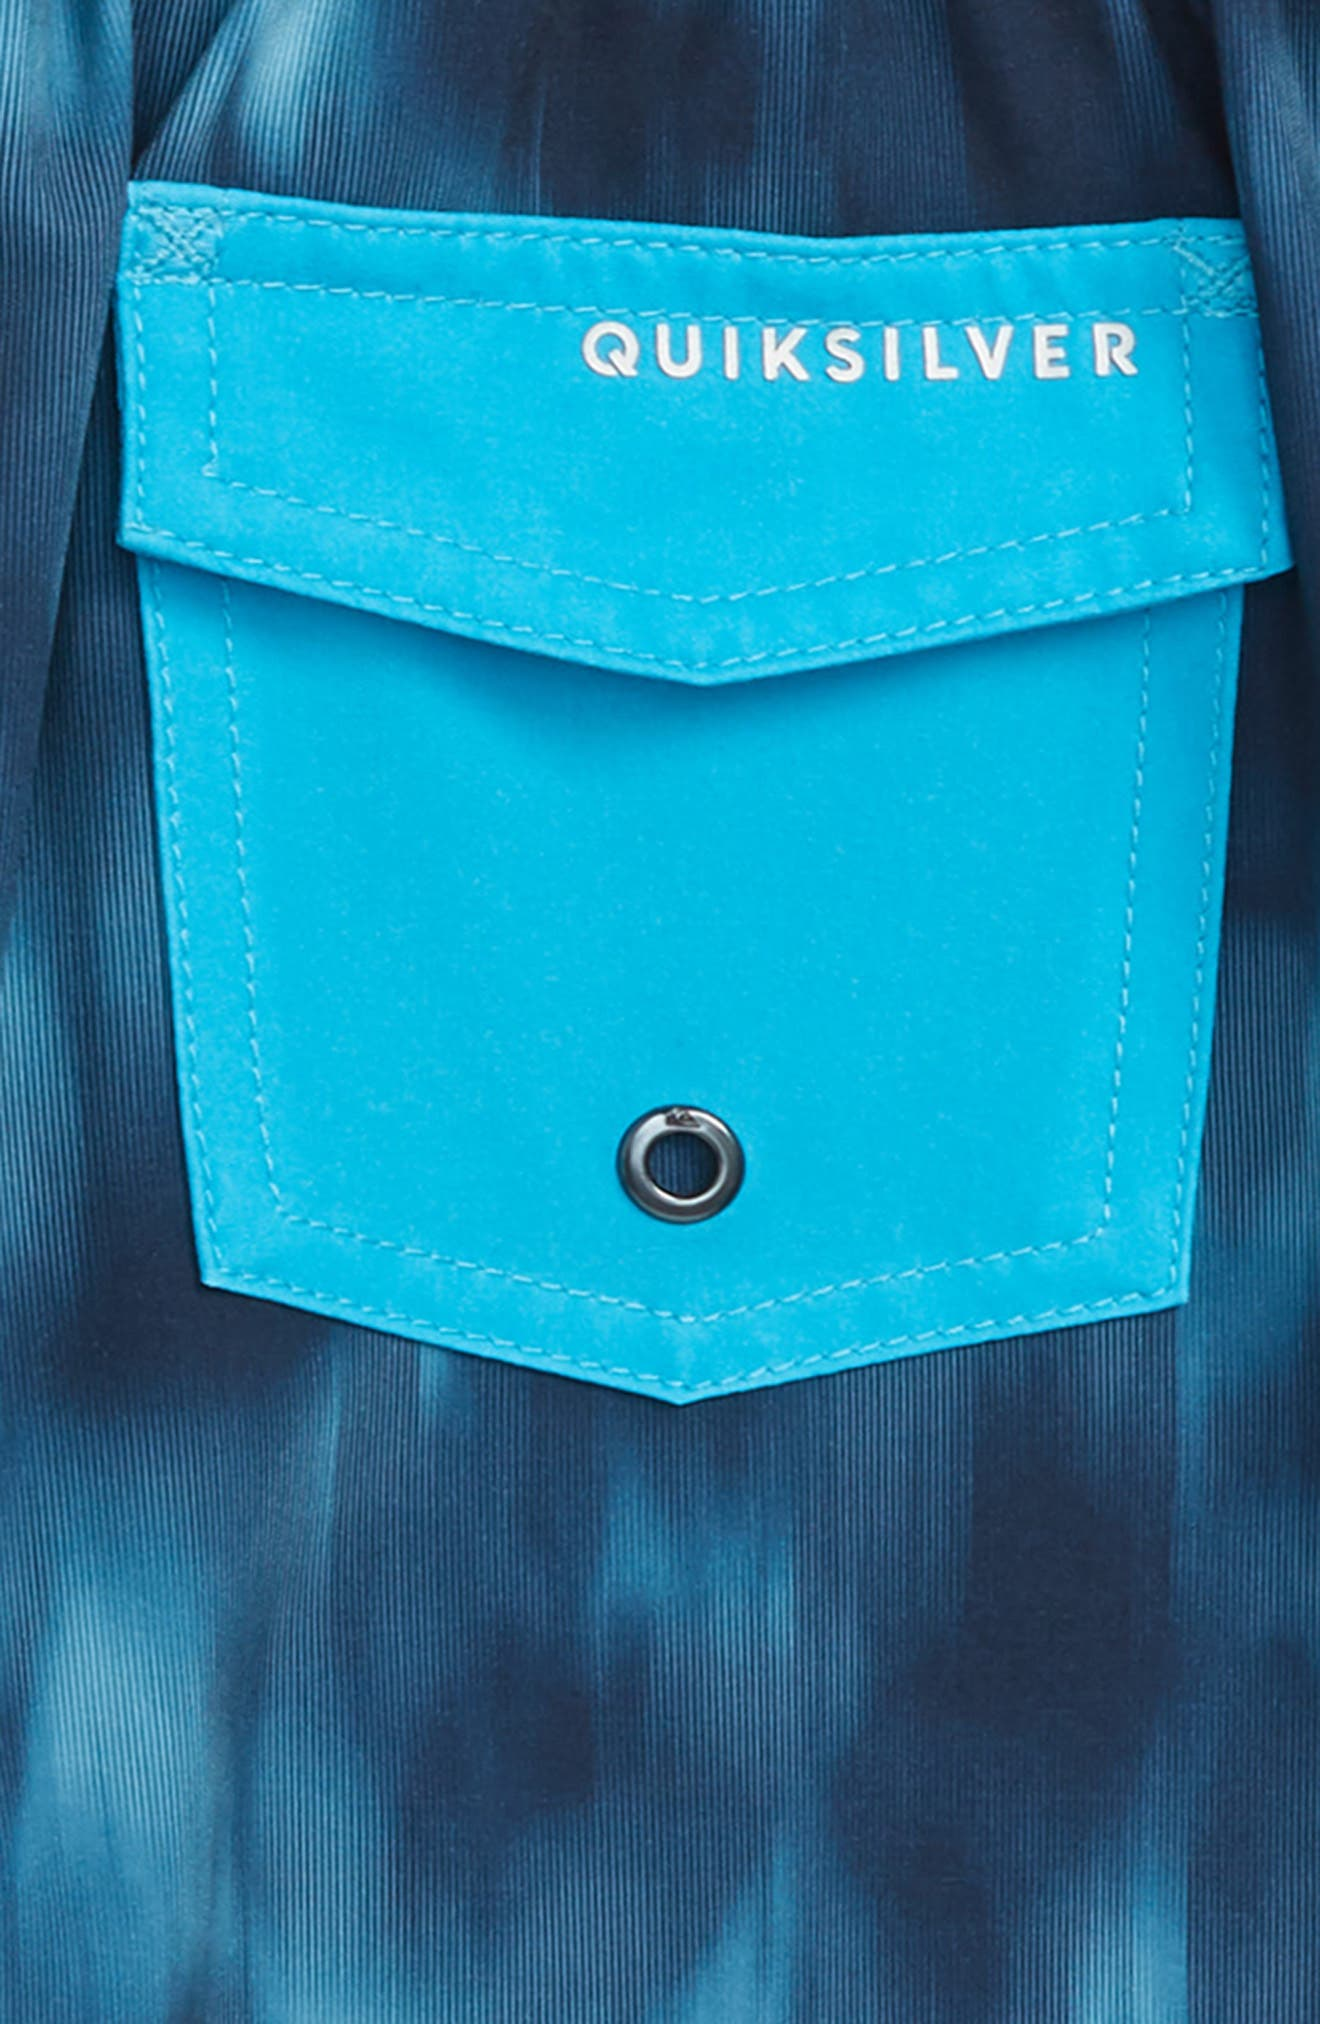 Highline Recon Board Shorts,                             Alternate thumbnail 3, color,                             REAL TEAL